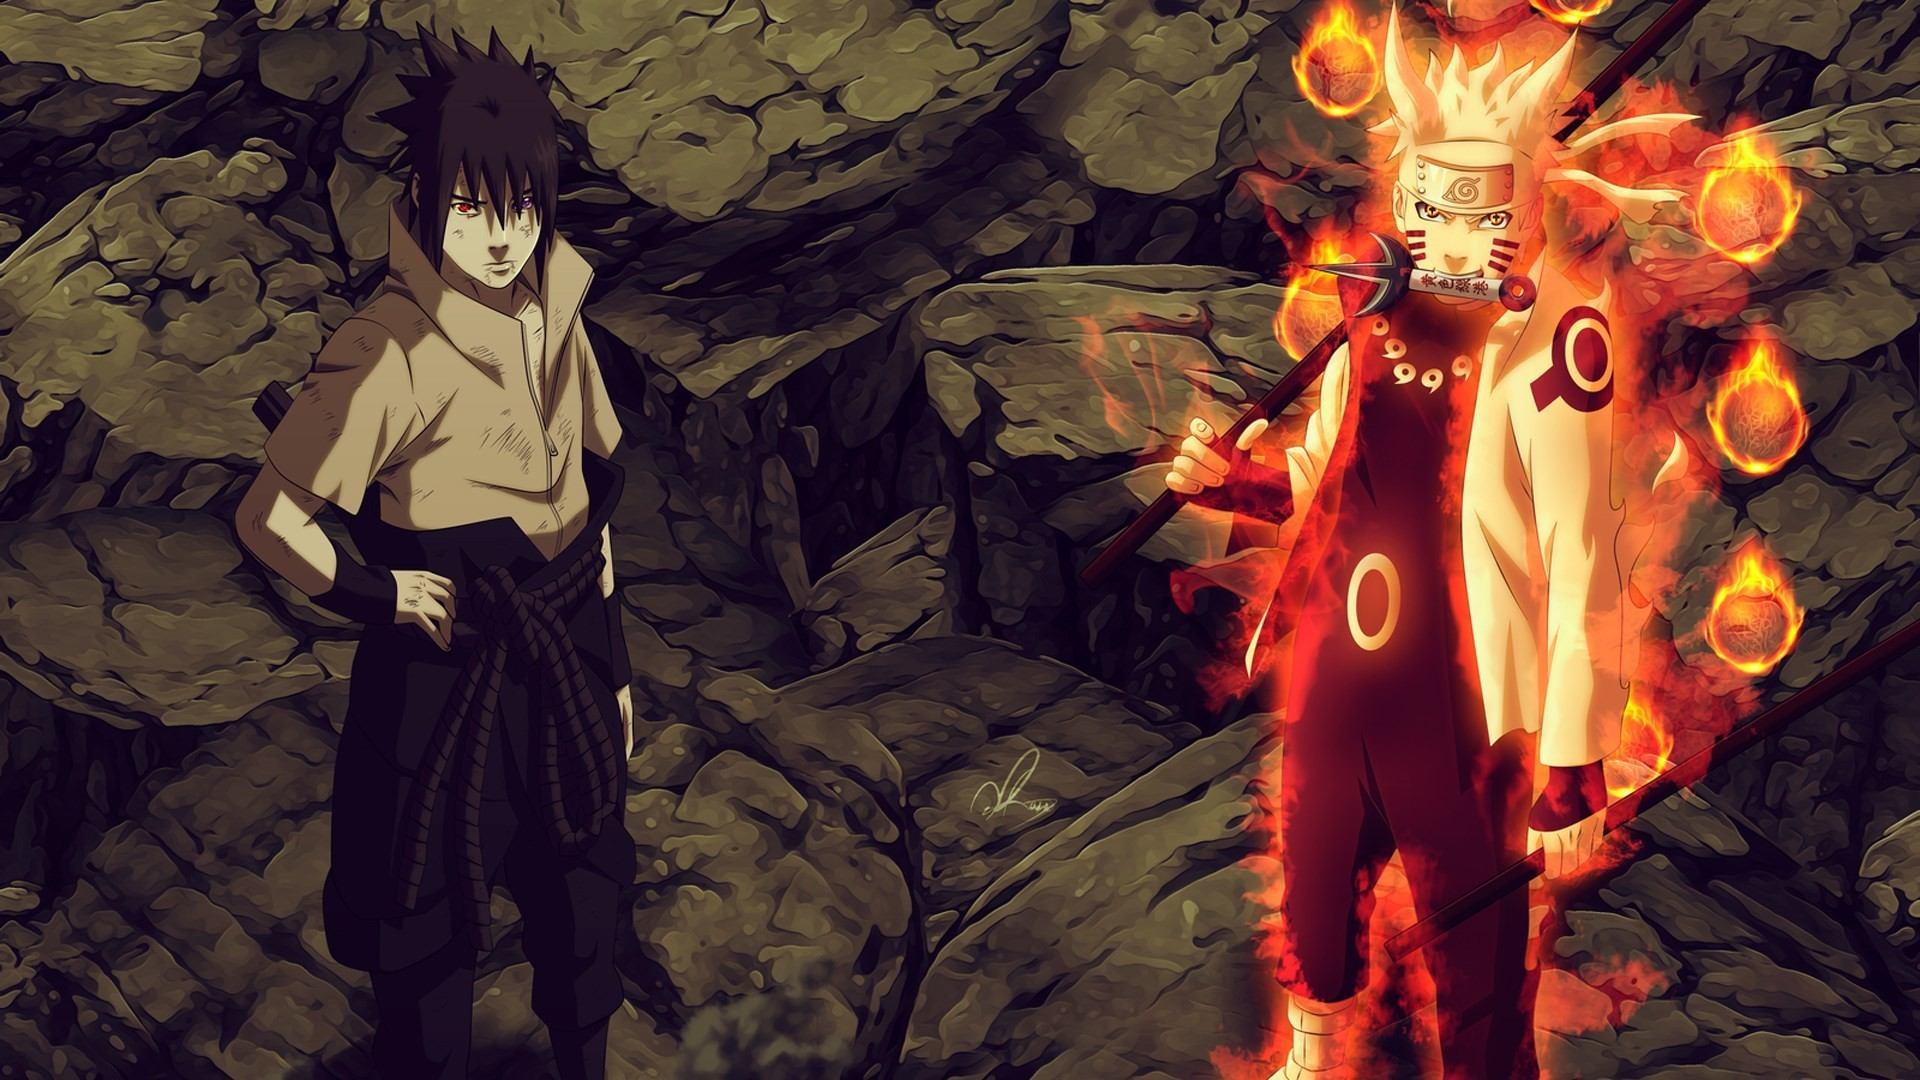 1920x1080 1920x1080 Best Naruto Wallpapers HD HD Wallpaper 1600×1000 Best Naruto Wallpapers (46